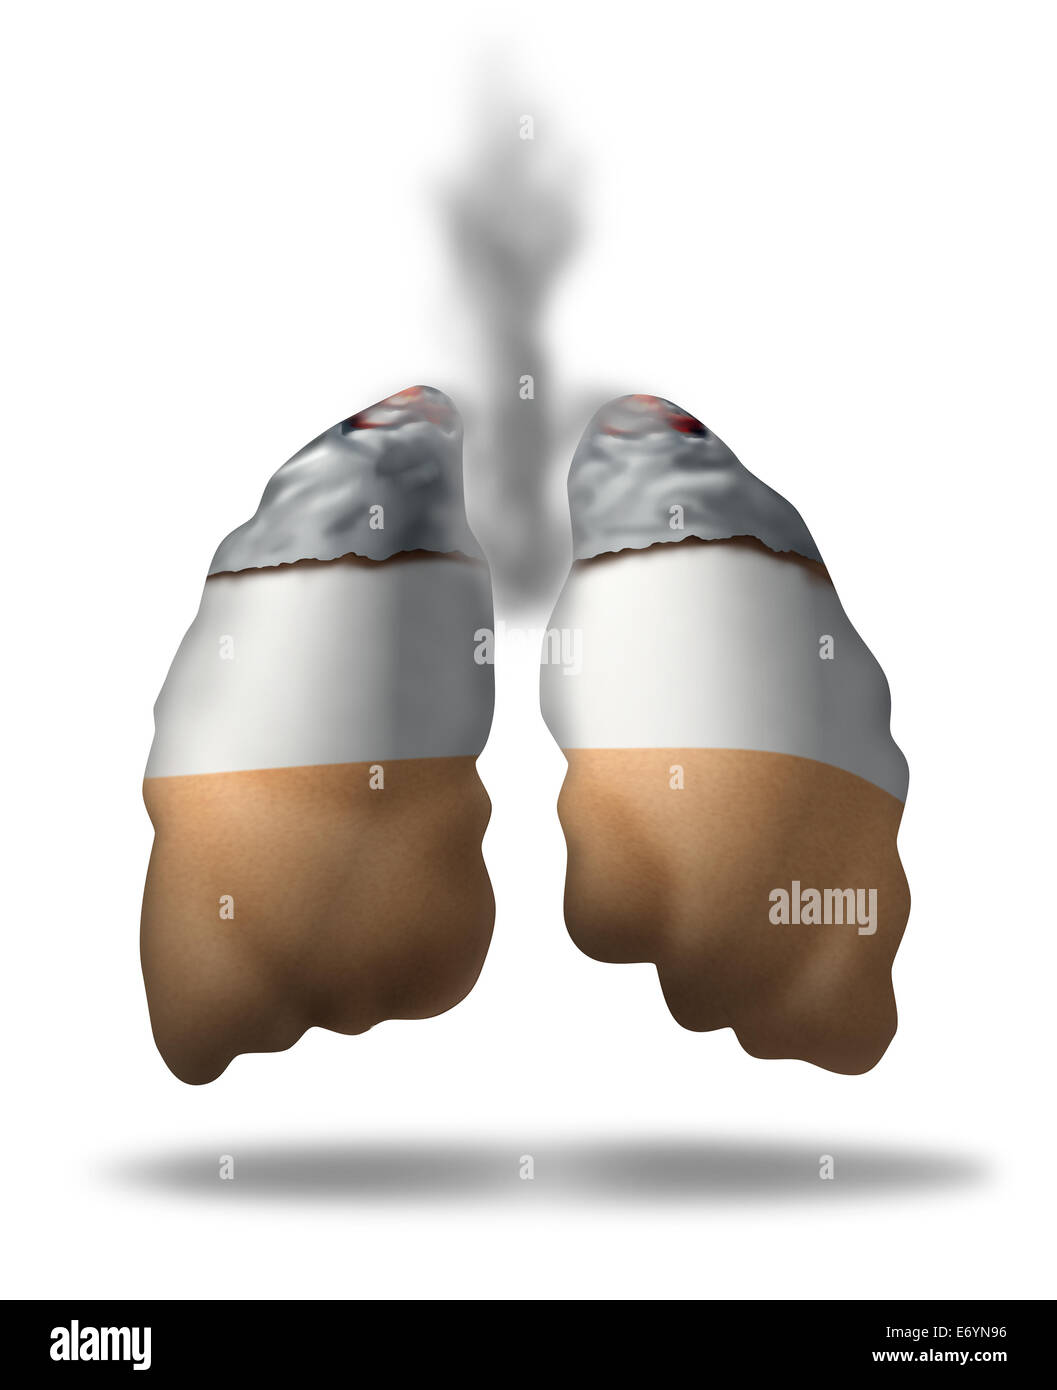 Cigarette lungs concept as a symbol of smoking health effects as a medical metaphor for lung cancer from toxic smoke Stock Photo